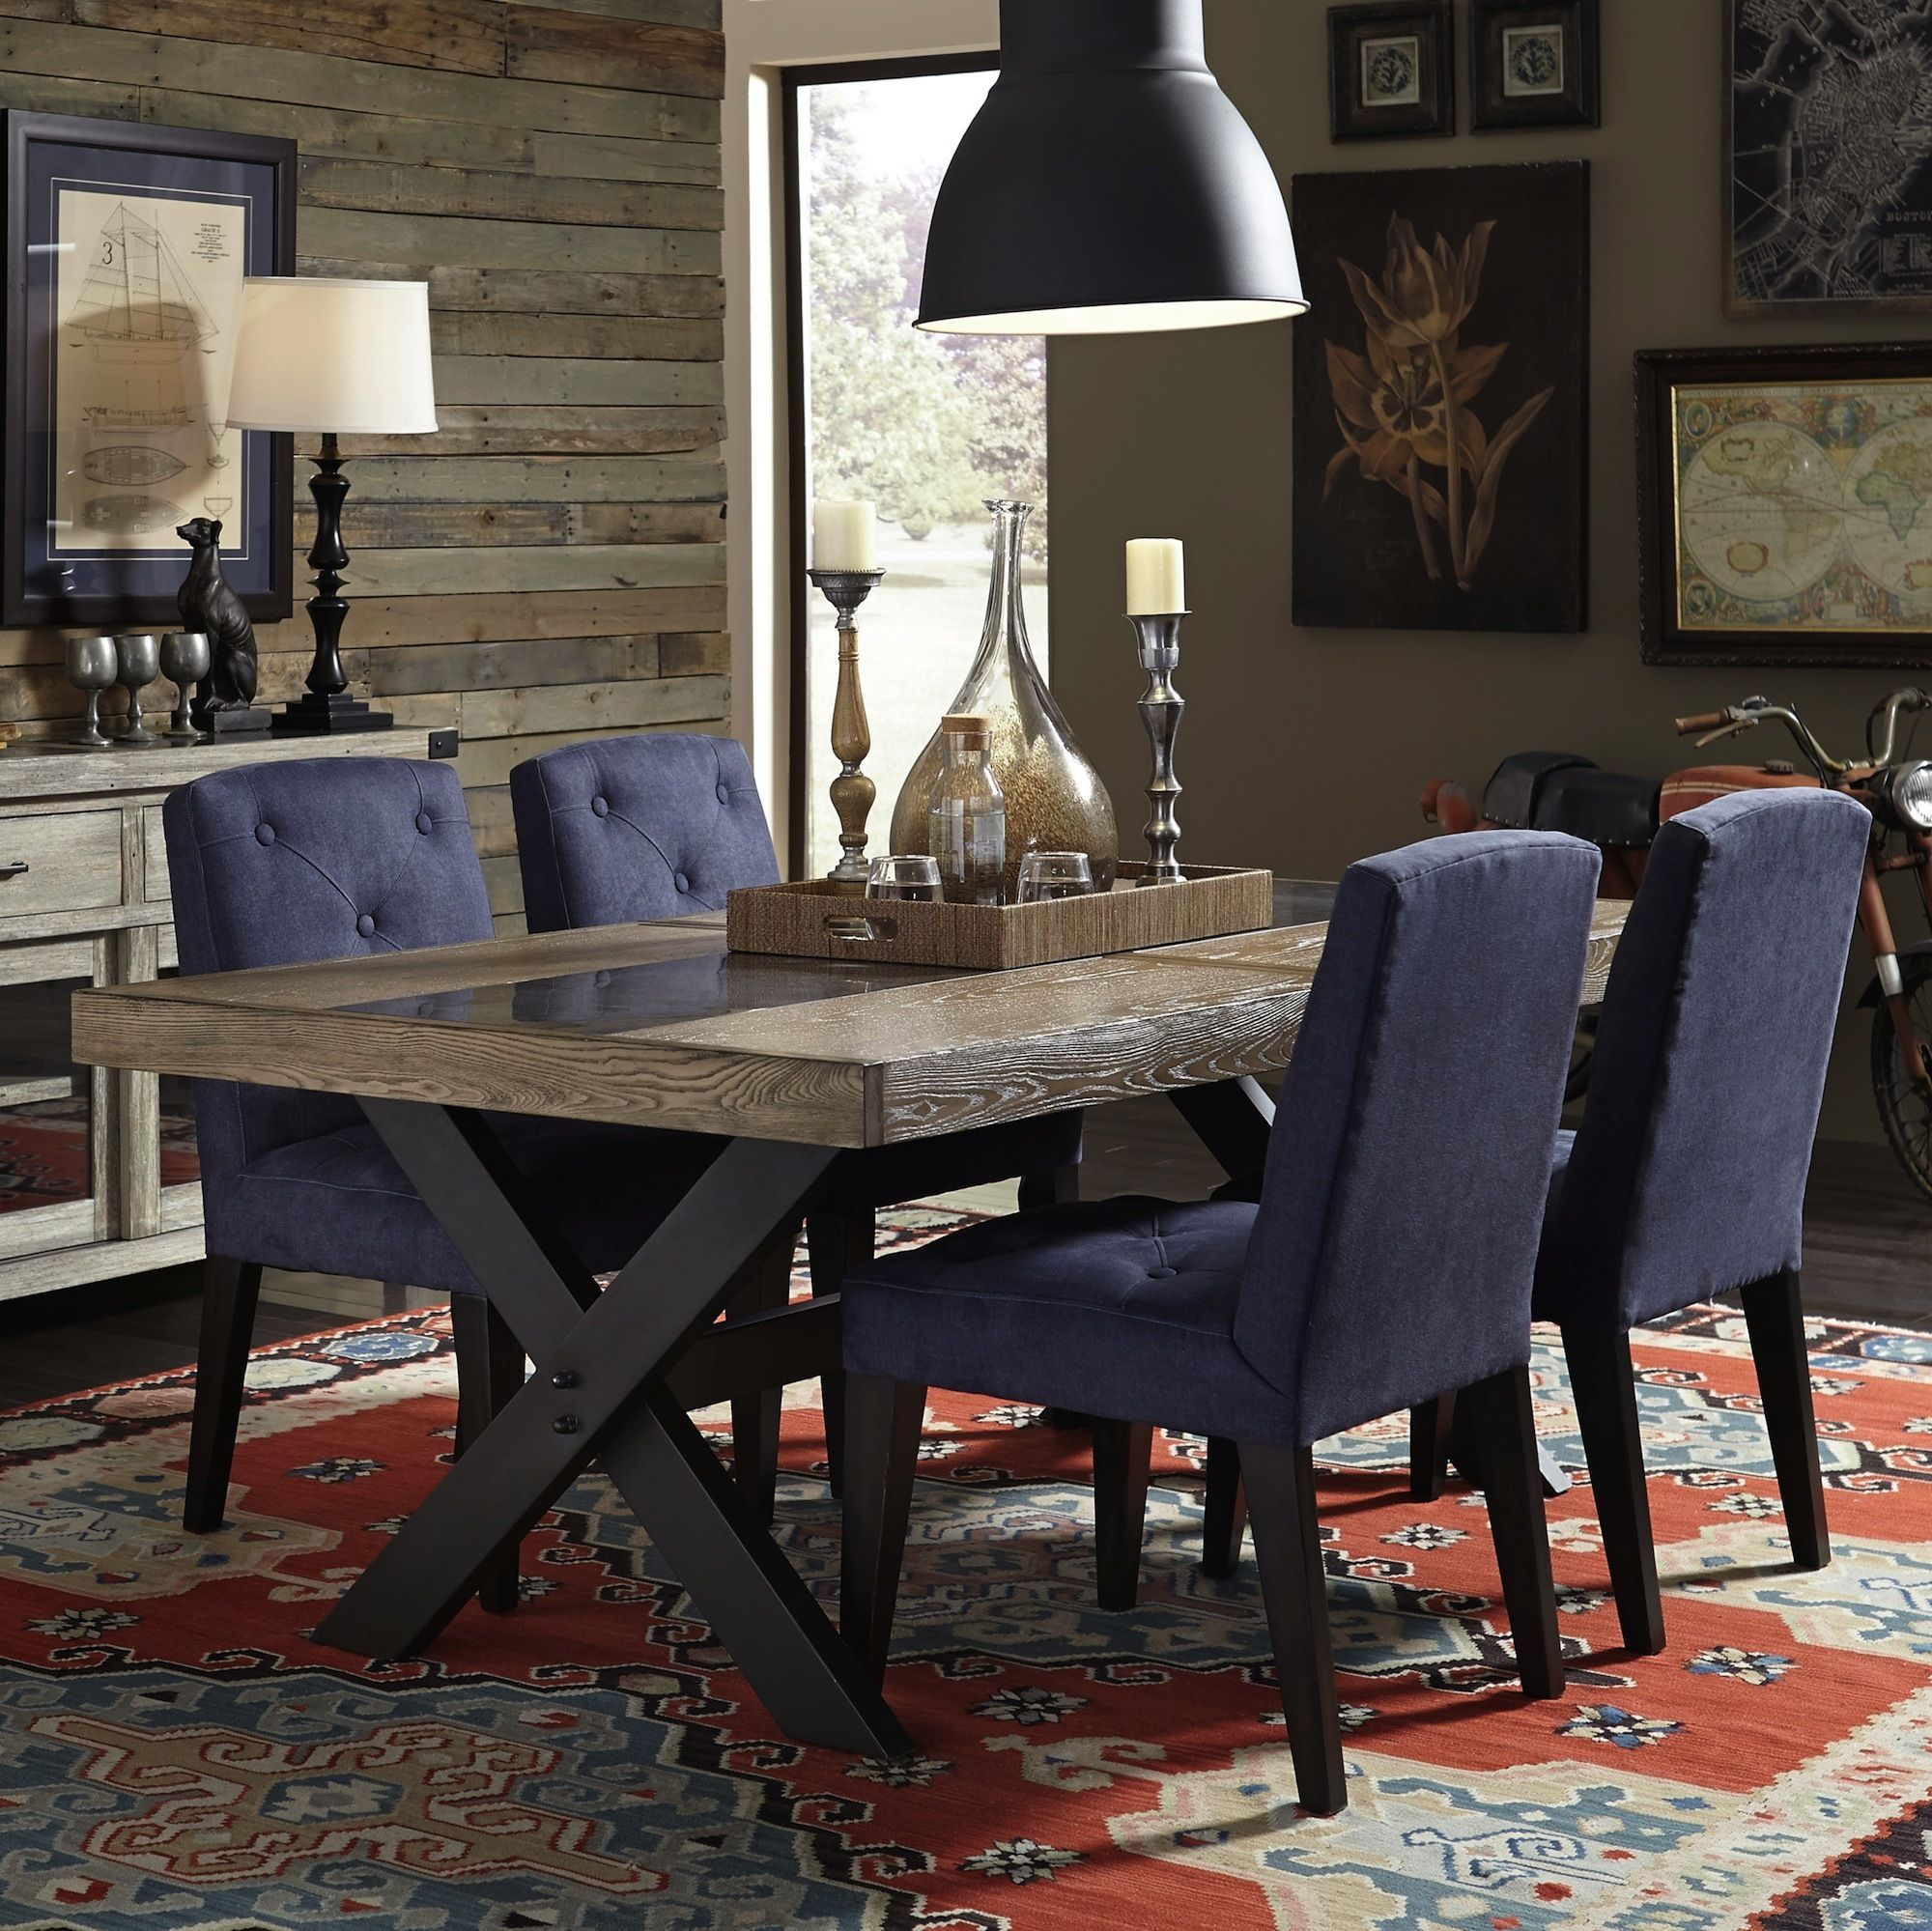 Picnic Table Dining Room: Bedford Avenue Picnic Table Dining Room Set